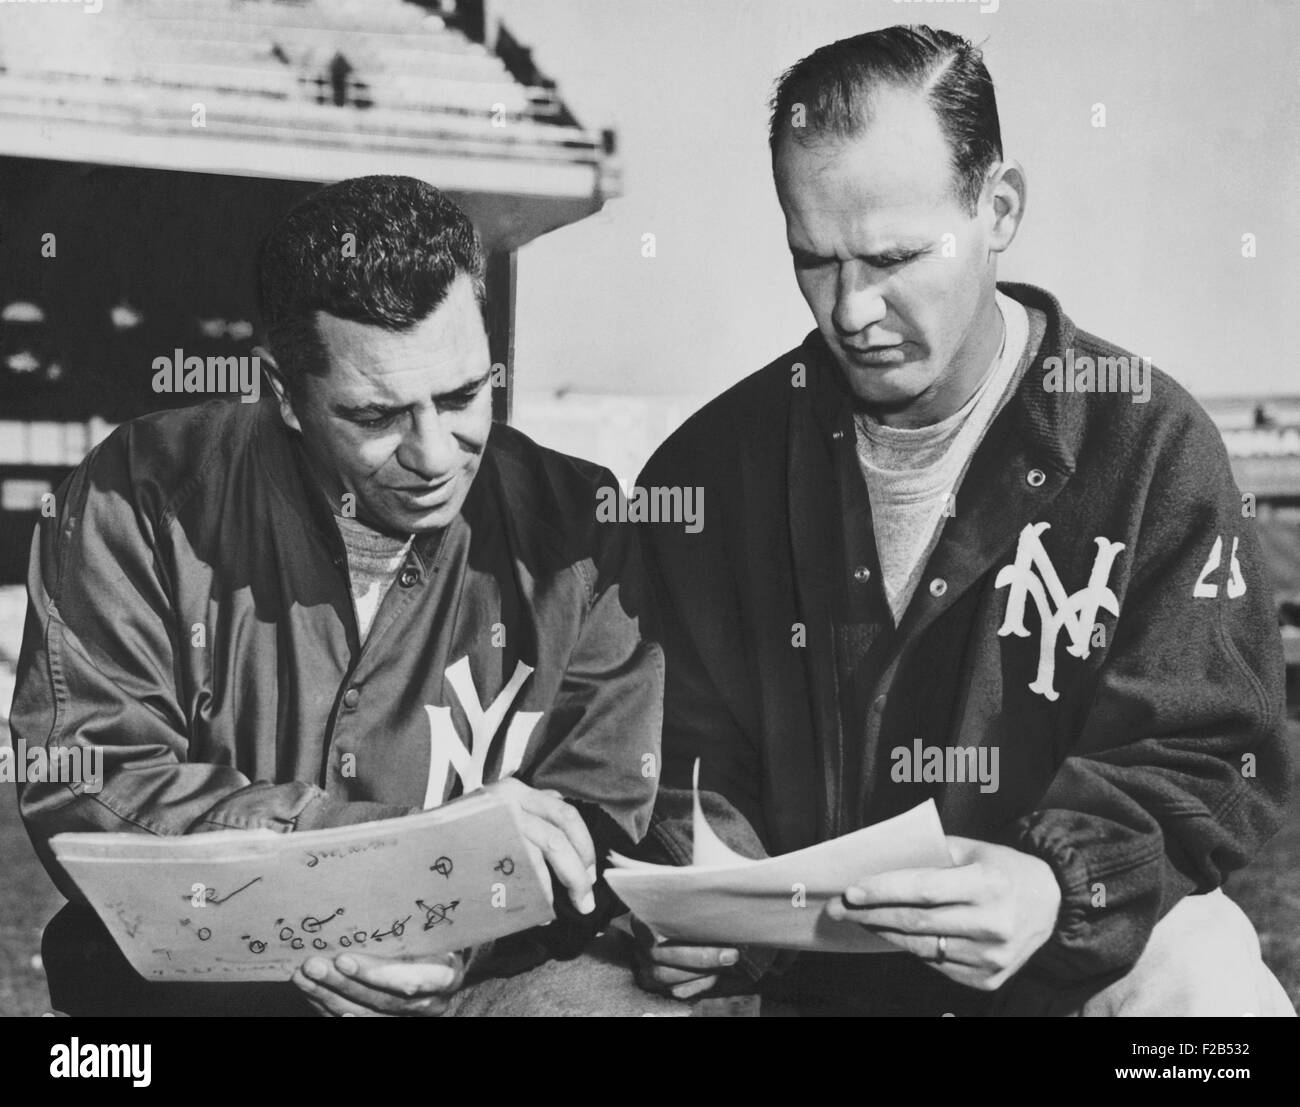 NY Giants coaches, Tom Landry and Vince Lombardi reviewing play charts, Nov. 15, 1958. - (BSLOC_2015_1_115) - Stock Image